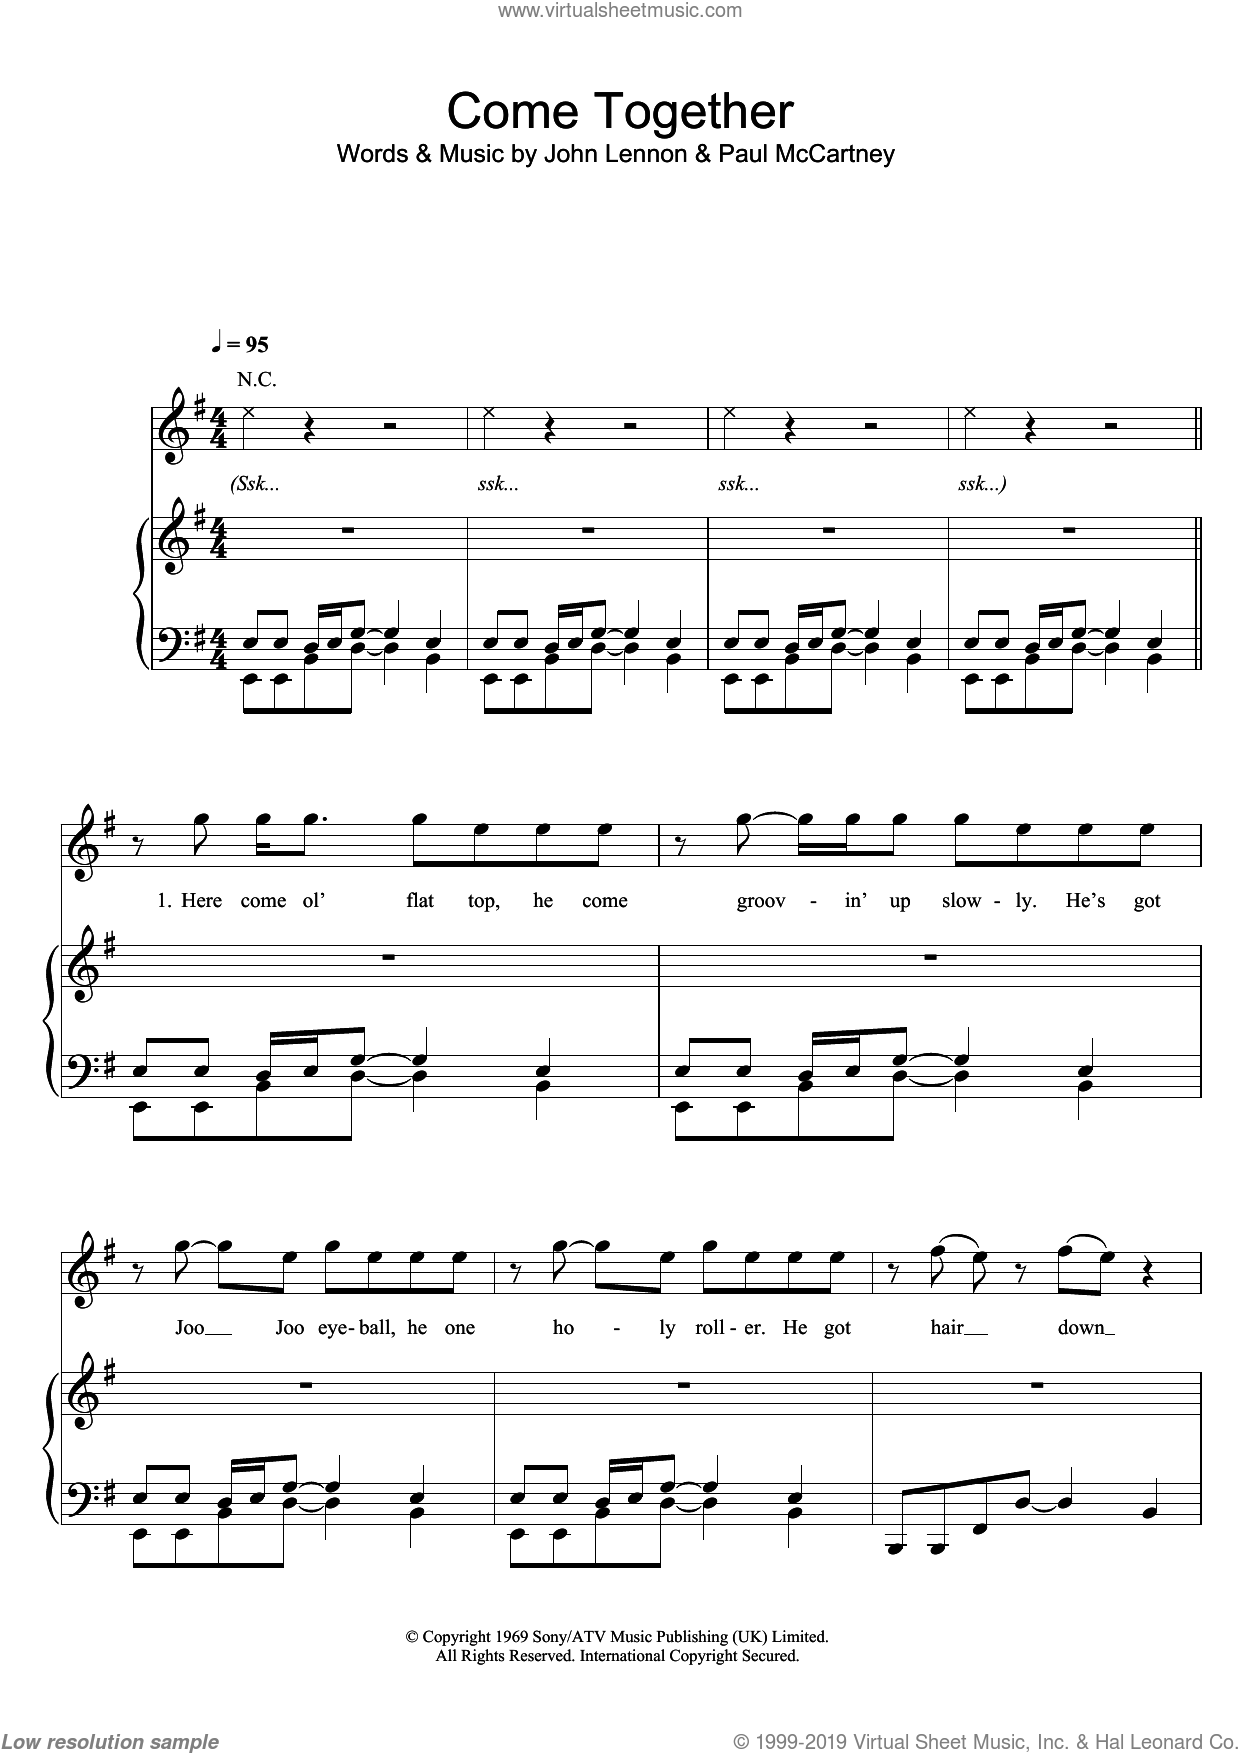 Come Together sheet music for voice, piano or guitar by Paul McCartney, Michael Jackson, The Beatles and John Lennon, intermediate skill level